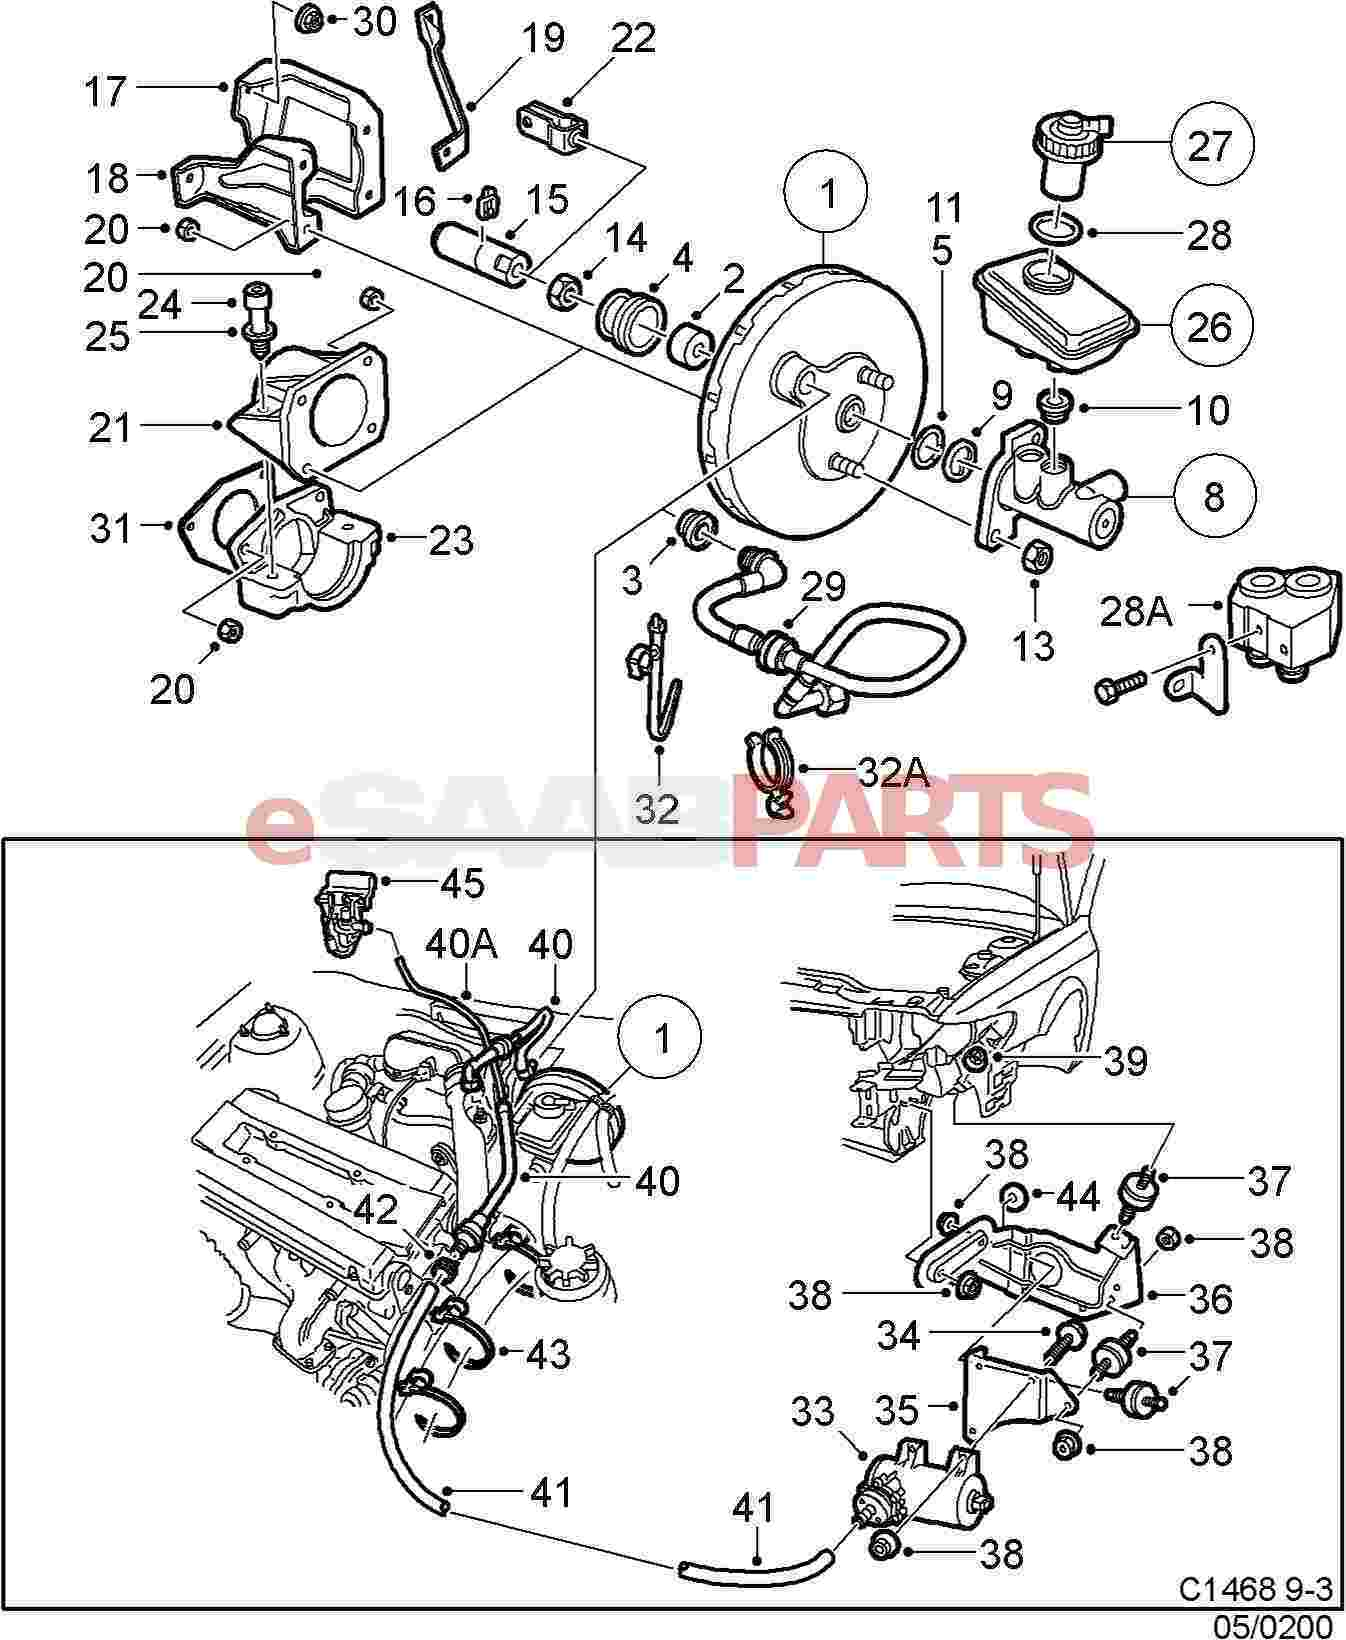 saab b204 engine diagram  saab  auto wiring diagram